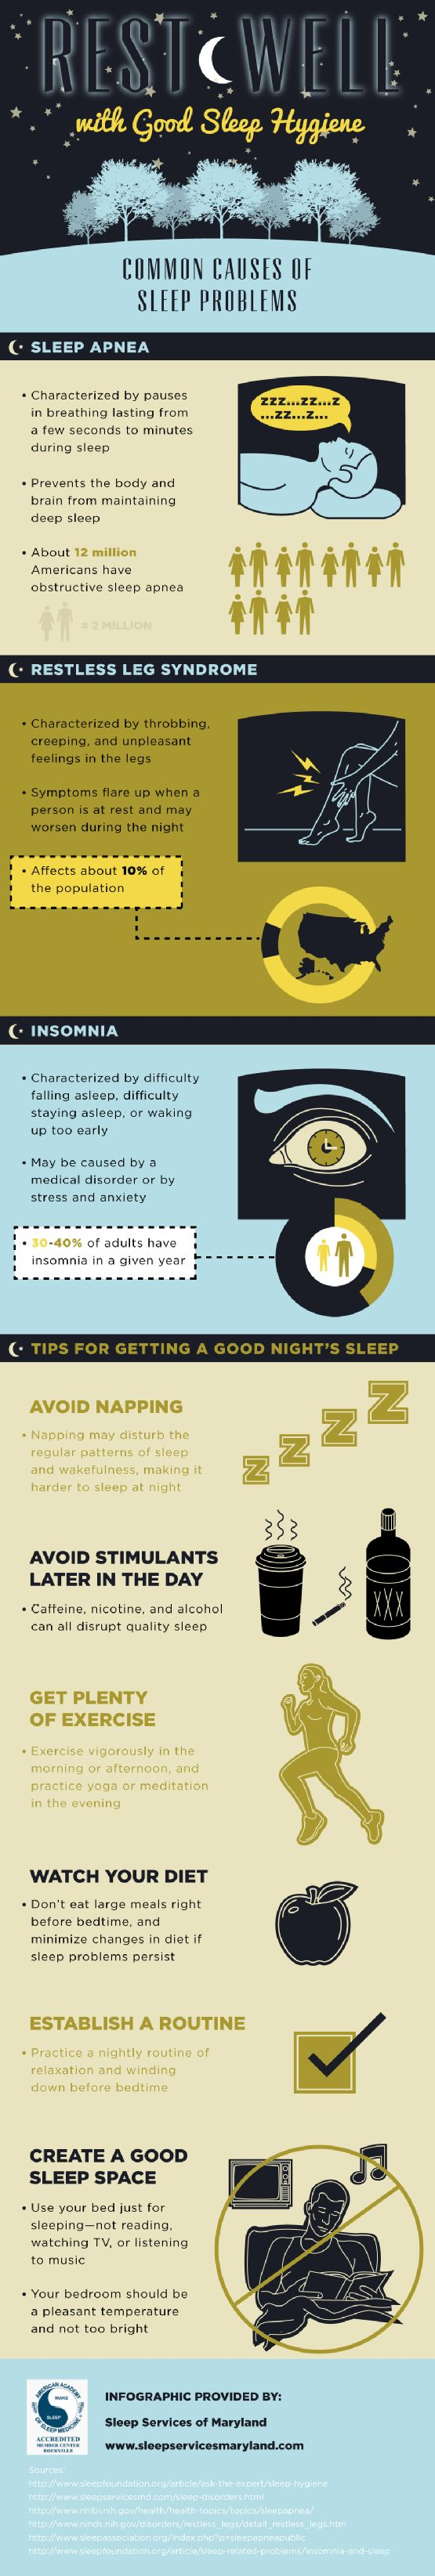 Napping During The Day Might Make It More Difficult To Fall Asleep At Night  Check